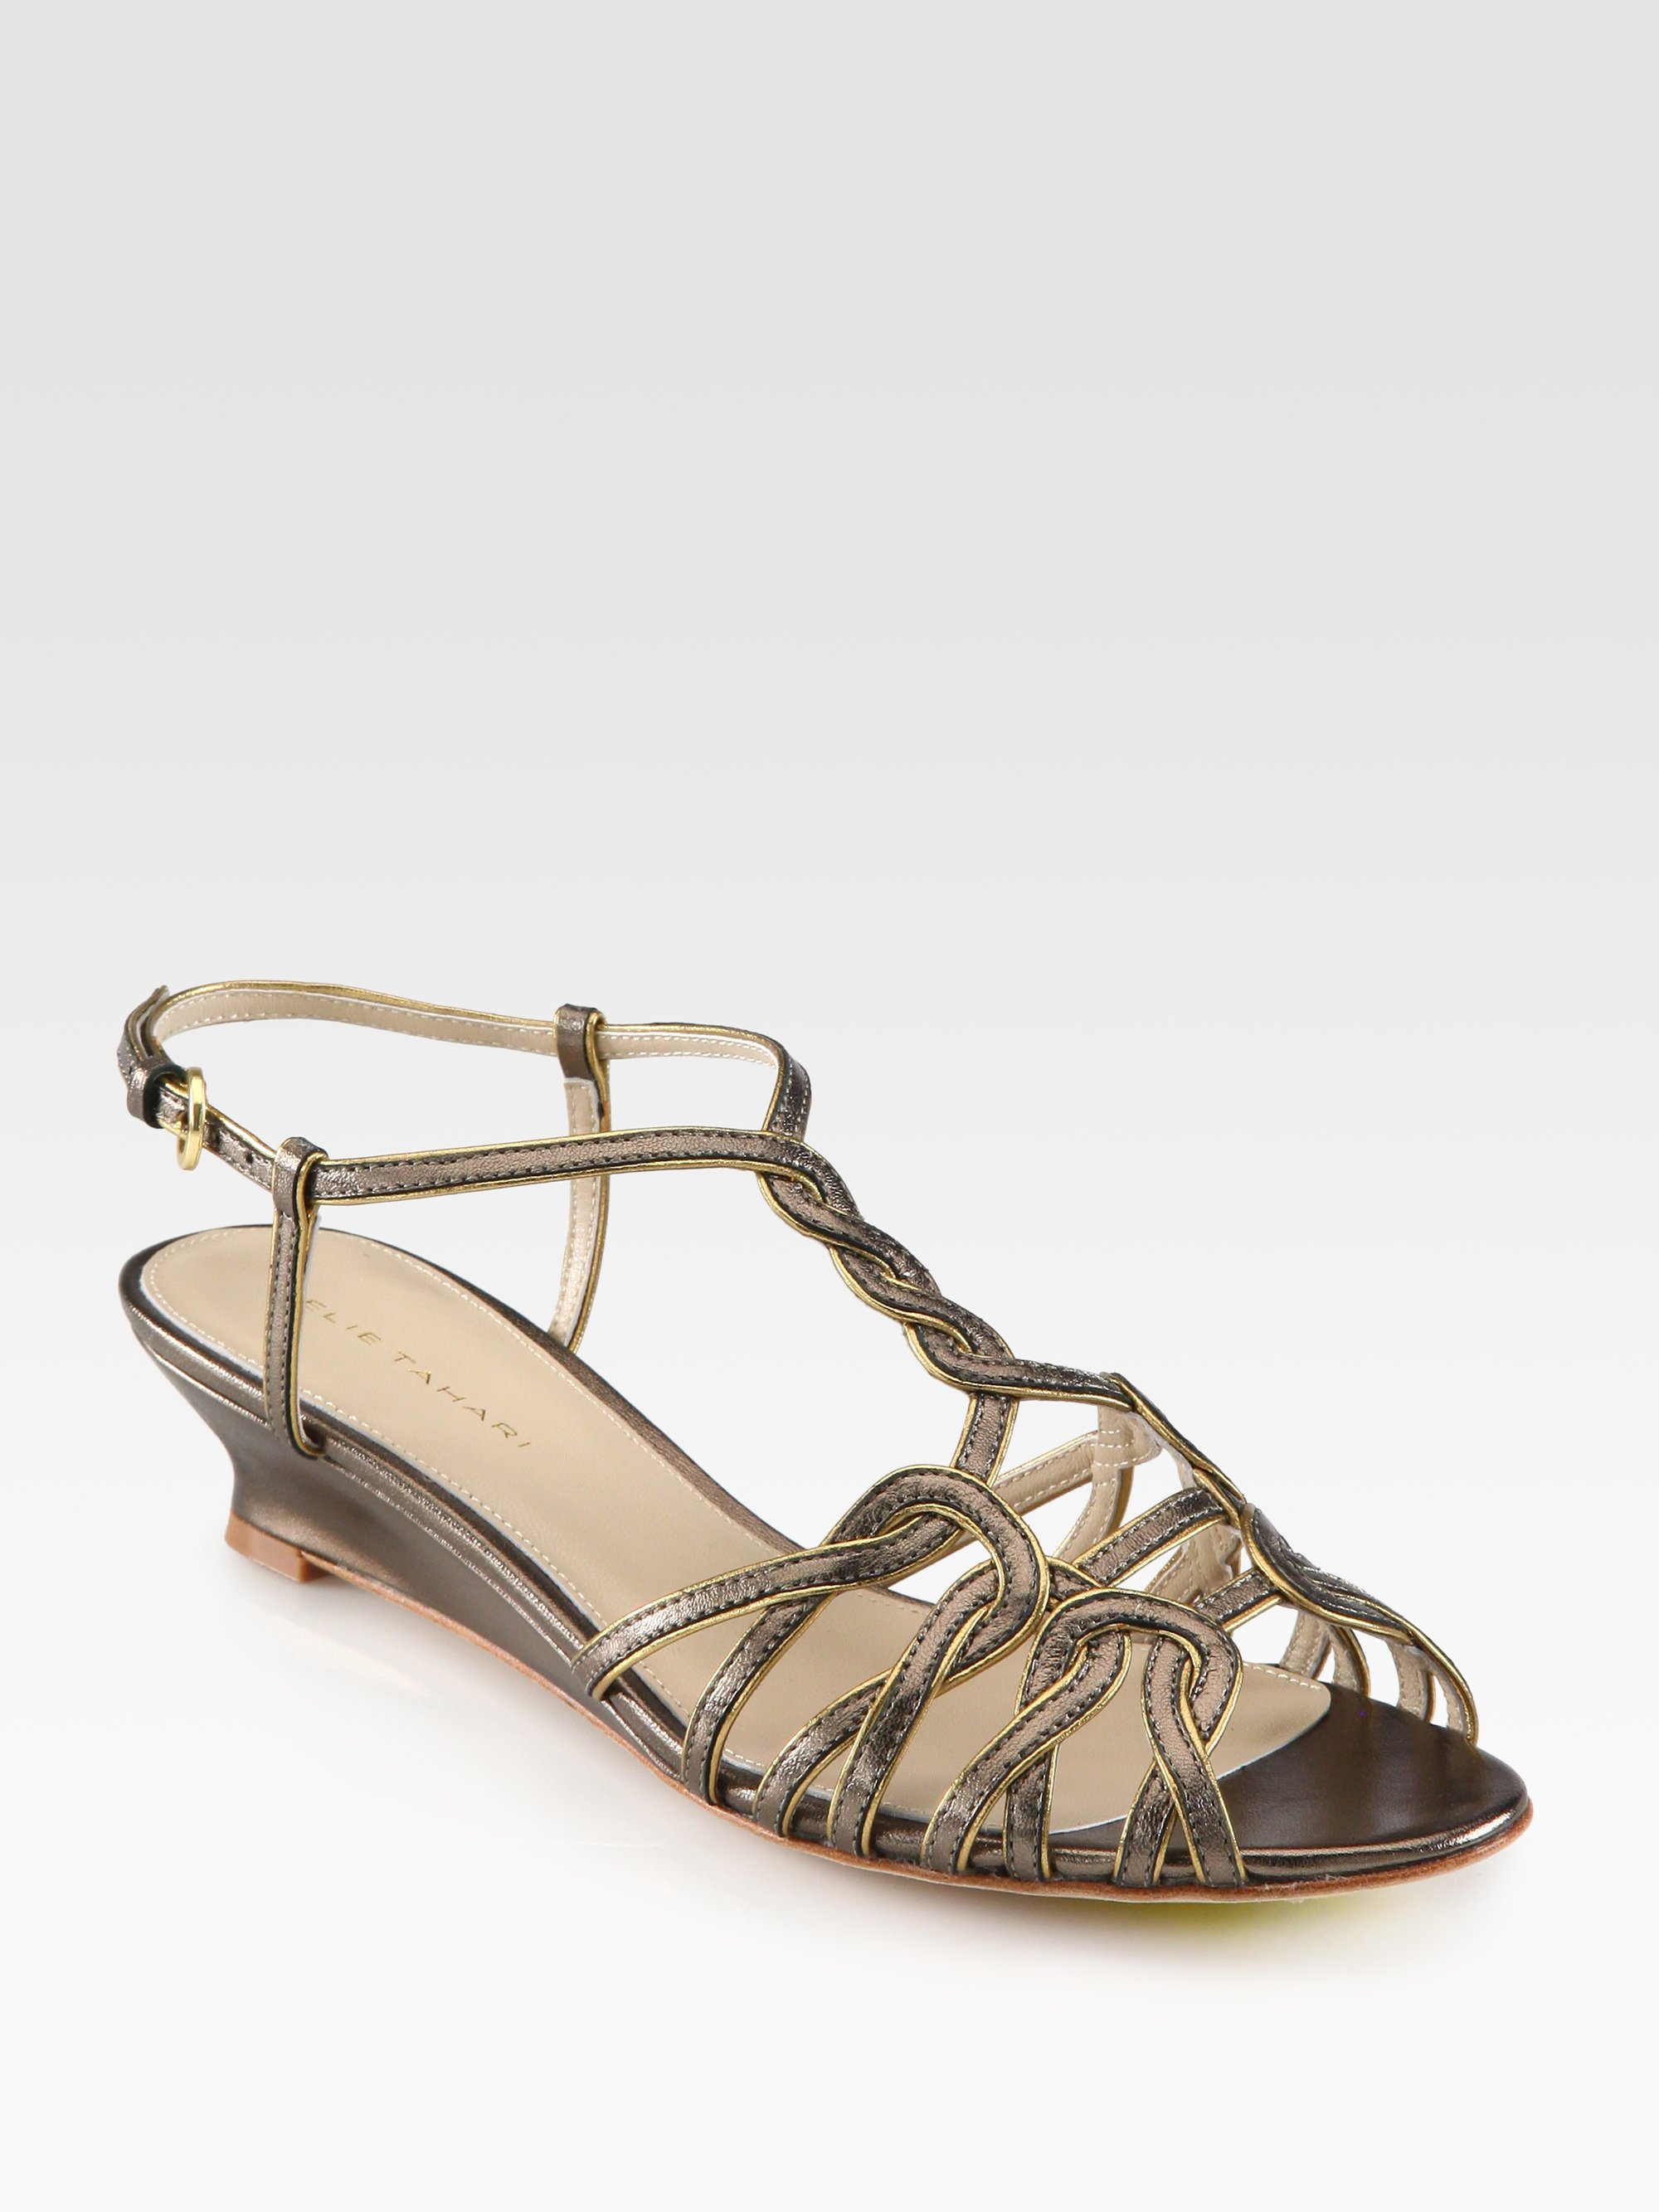 elie tahari india metallic leather demiwedge sandals in